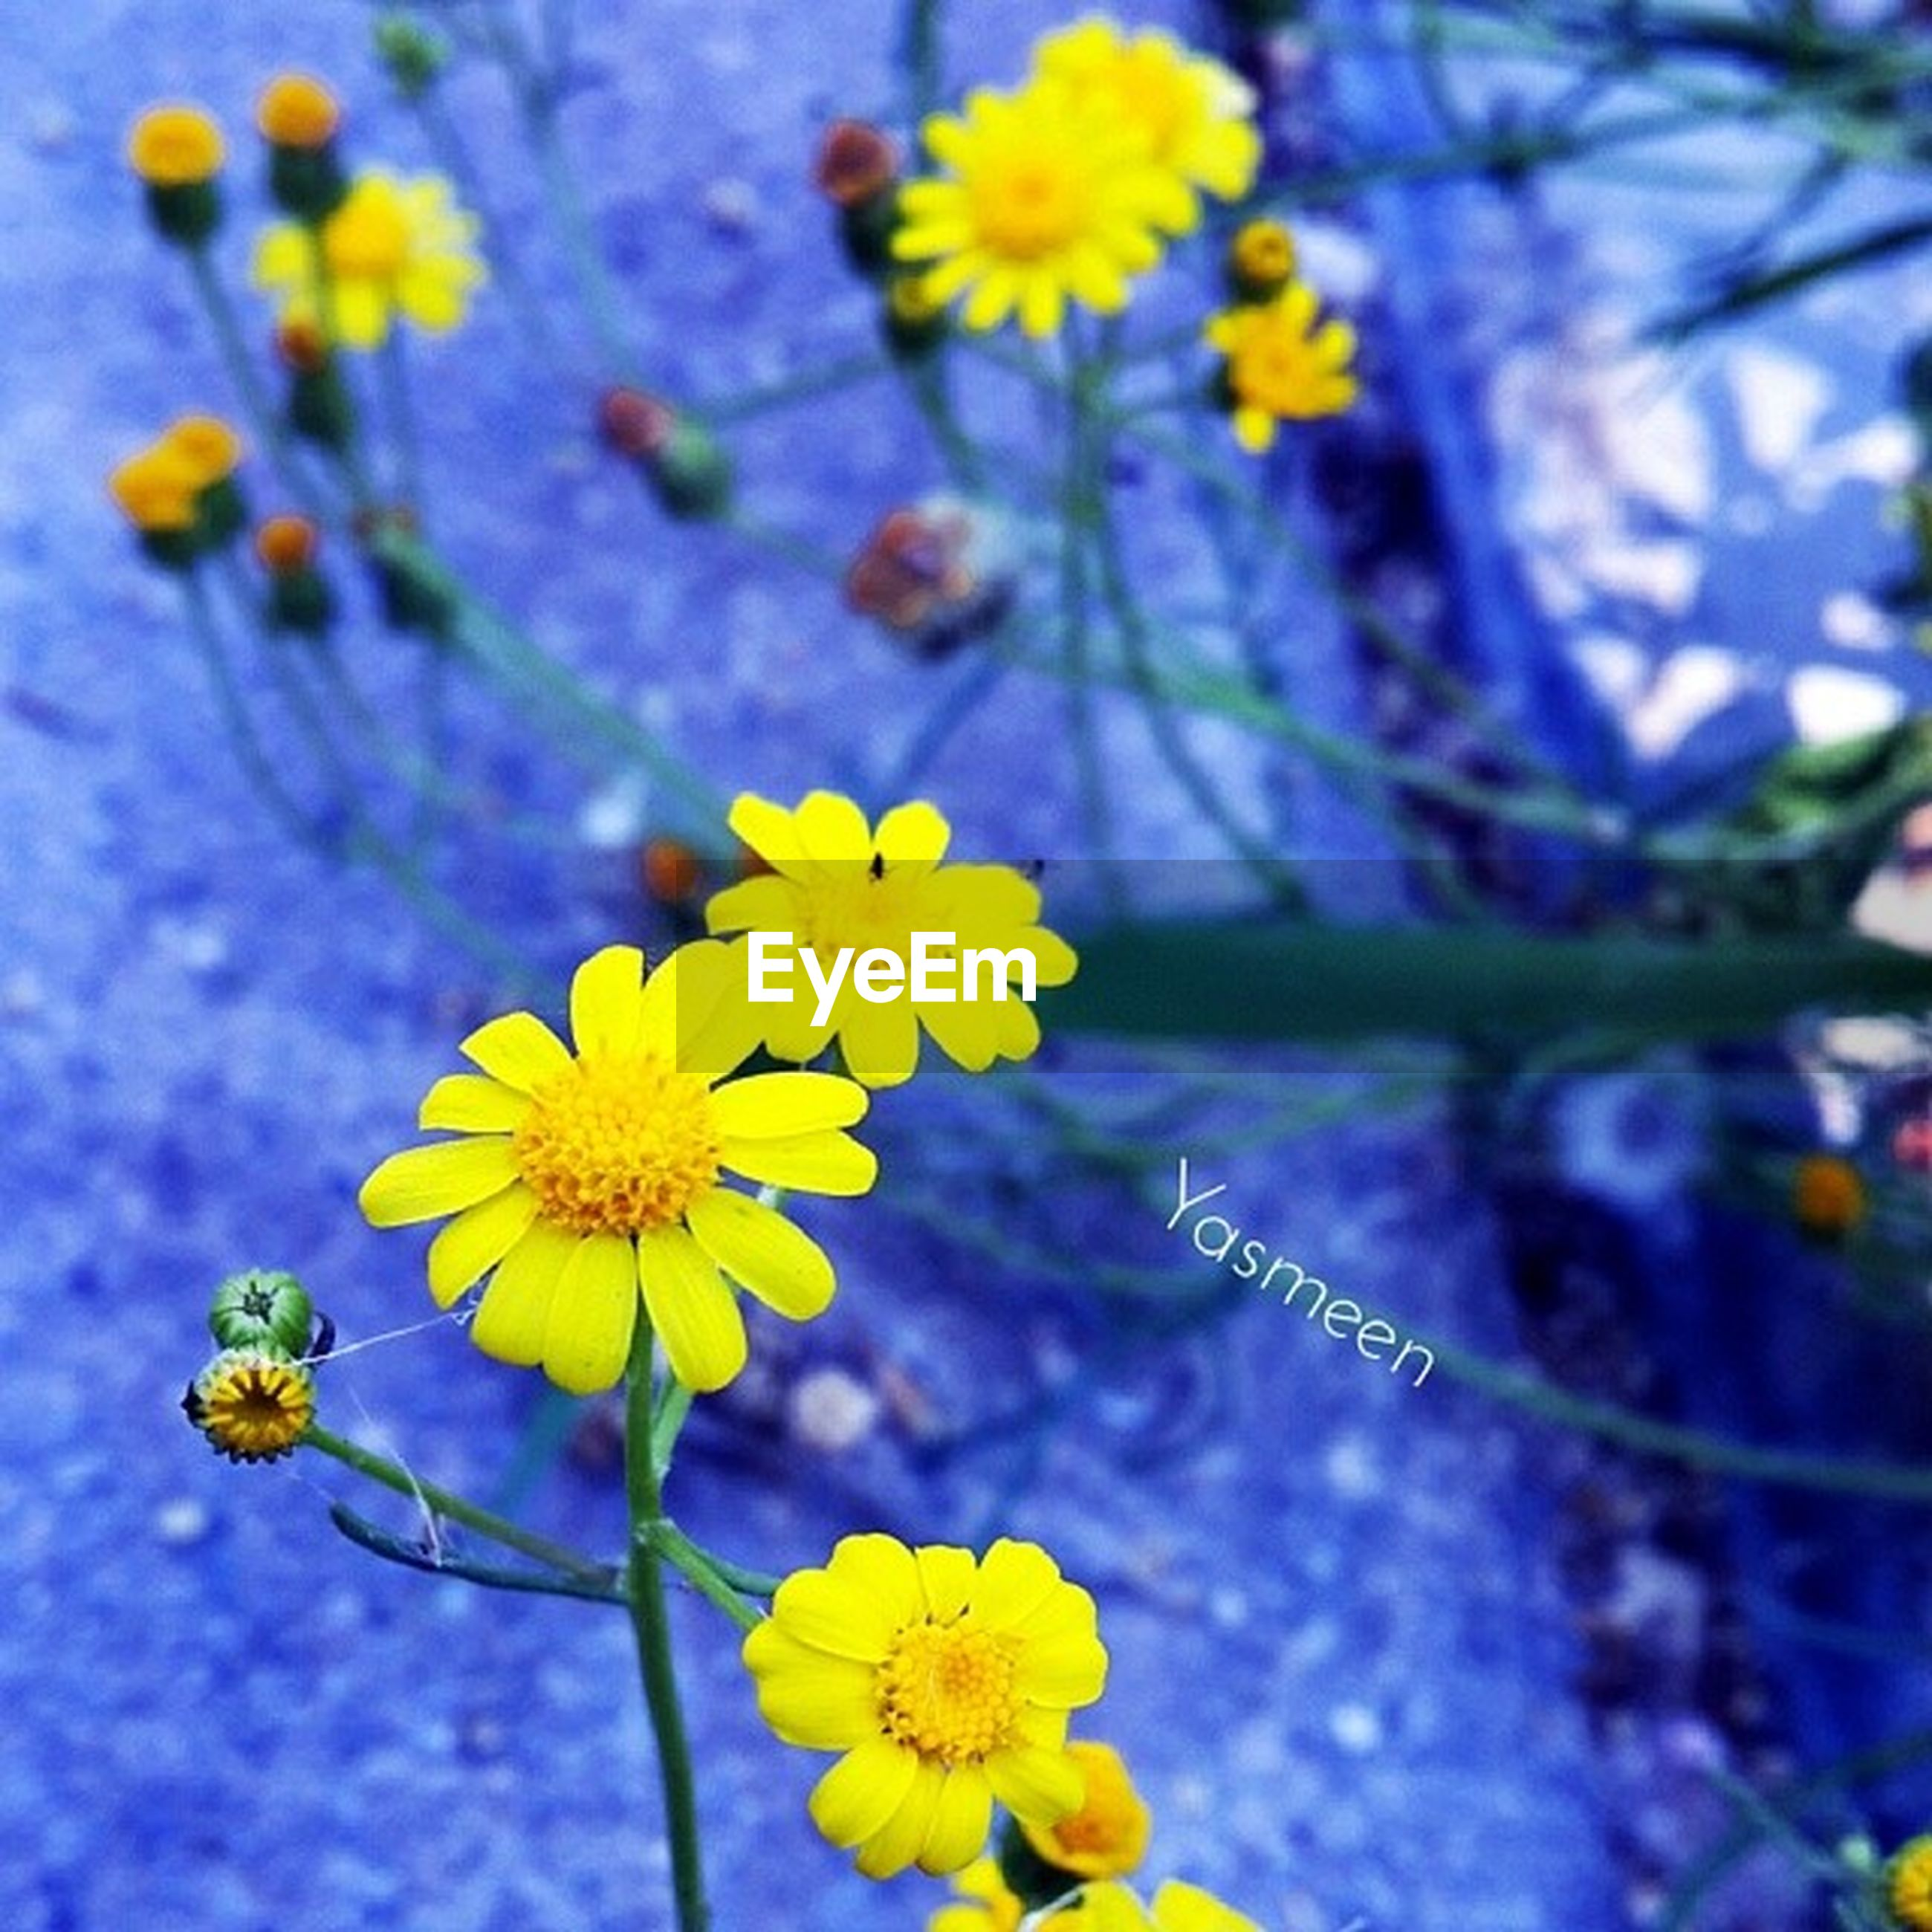 flower, yellow, freshness, fragility, petal, growth, flower head, beauty in nature, focus on foreground, close-up, blooming, nature, plant, blossom, in bloom, stem, selective focus, botany, springtime, outdoors